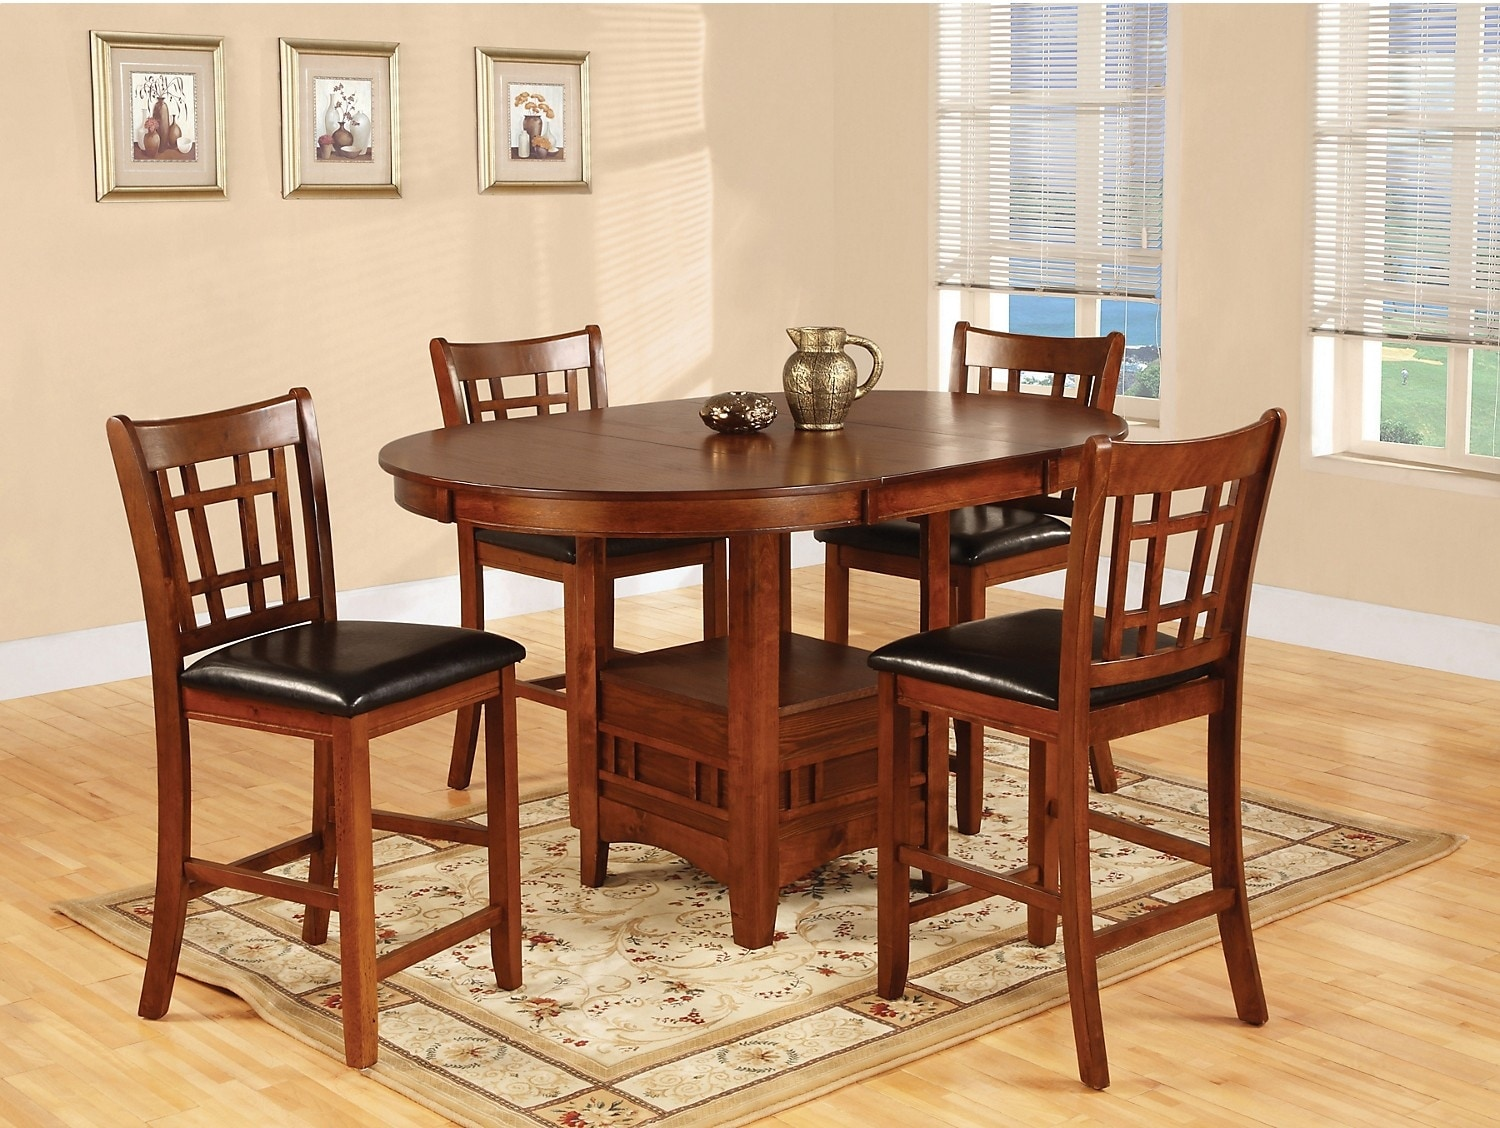 Dining Room Furniture - Dalton 5 Piece Oak Counter-Height Dining Package